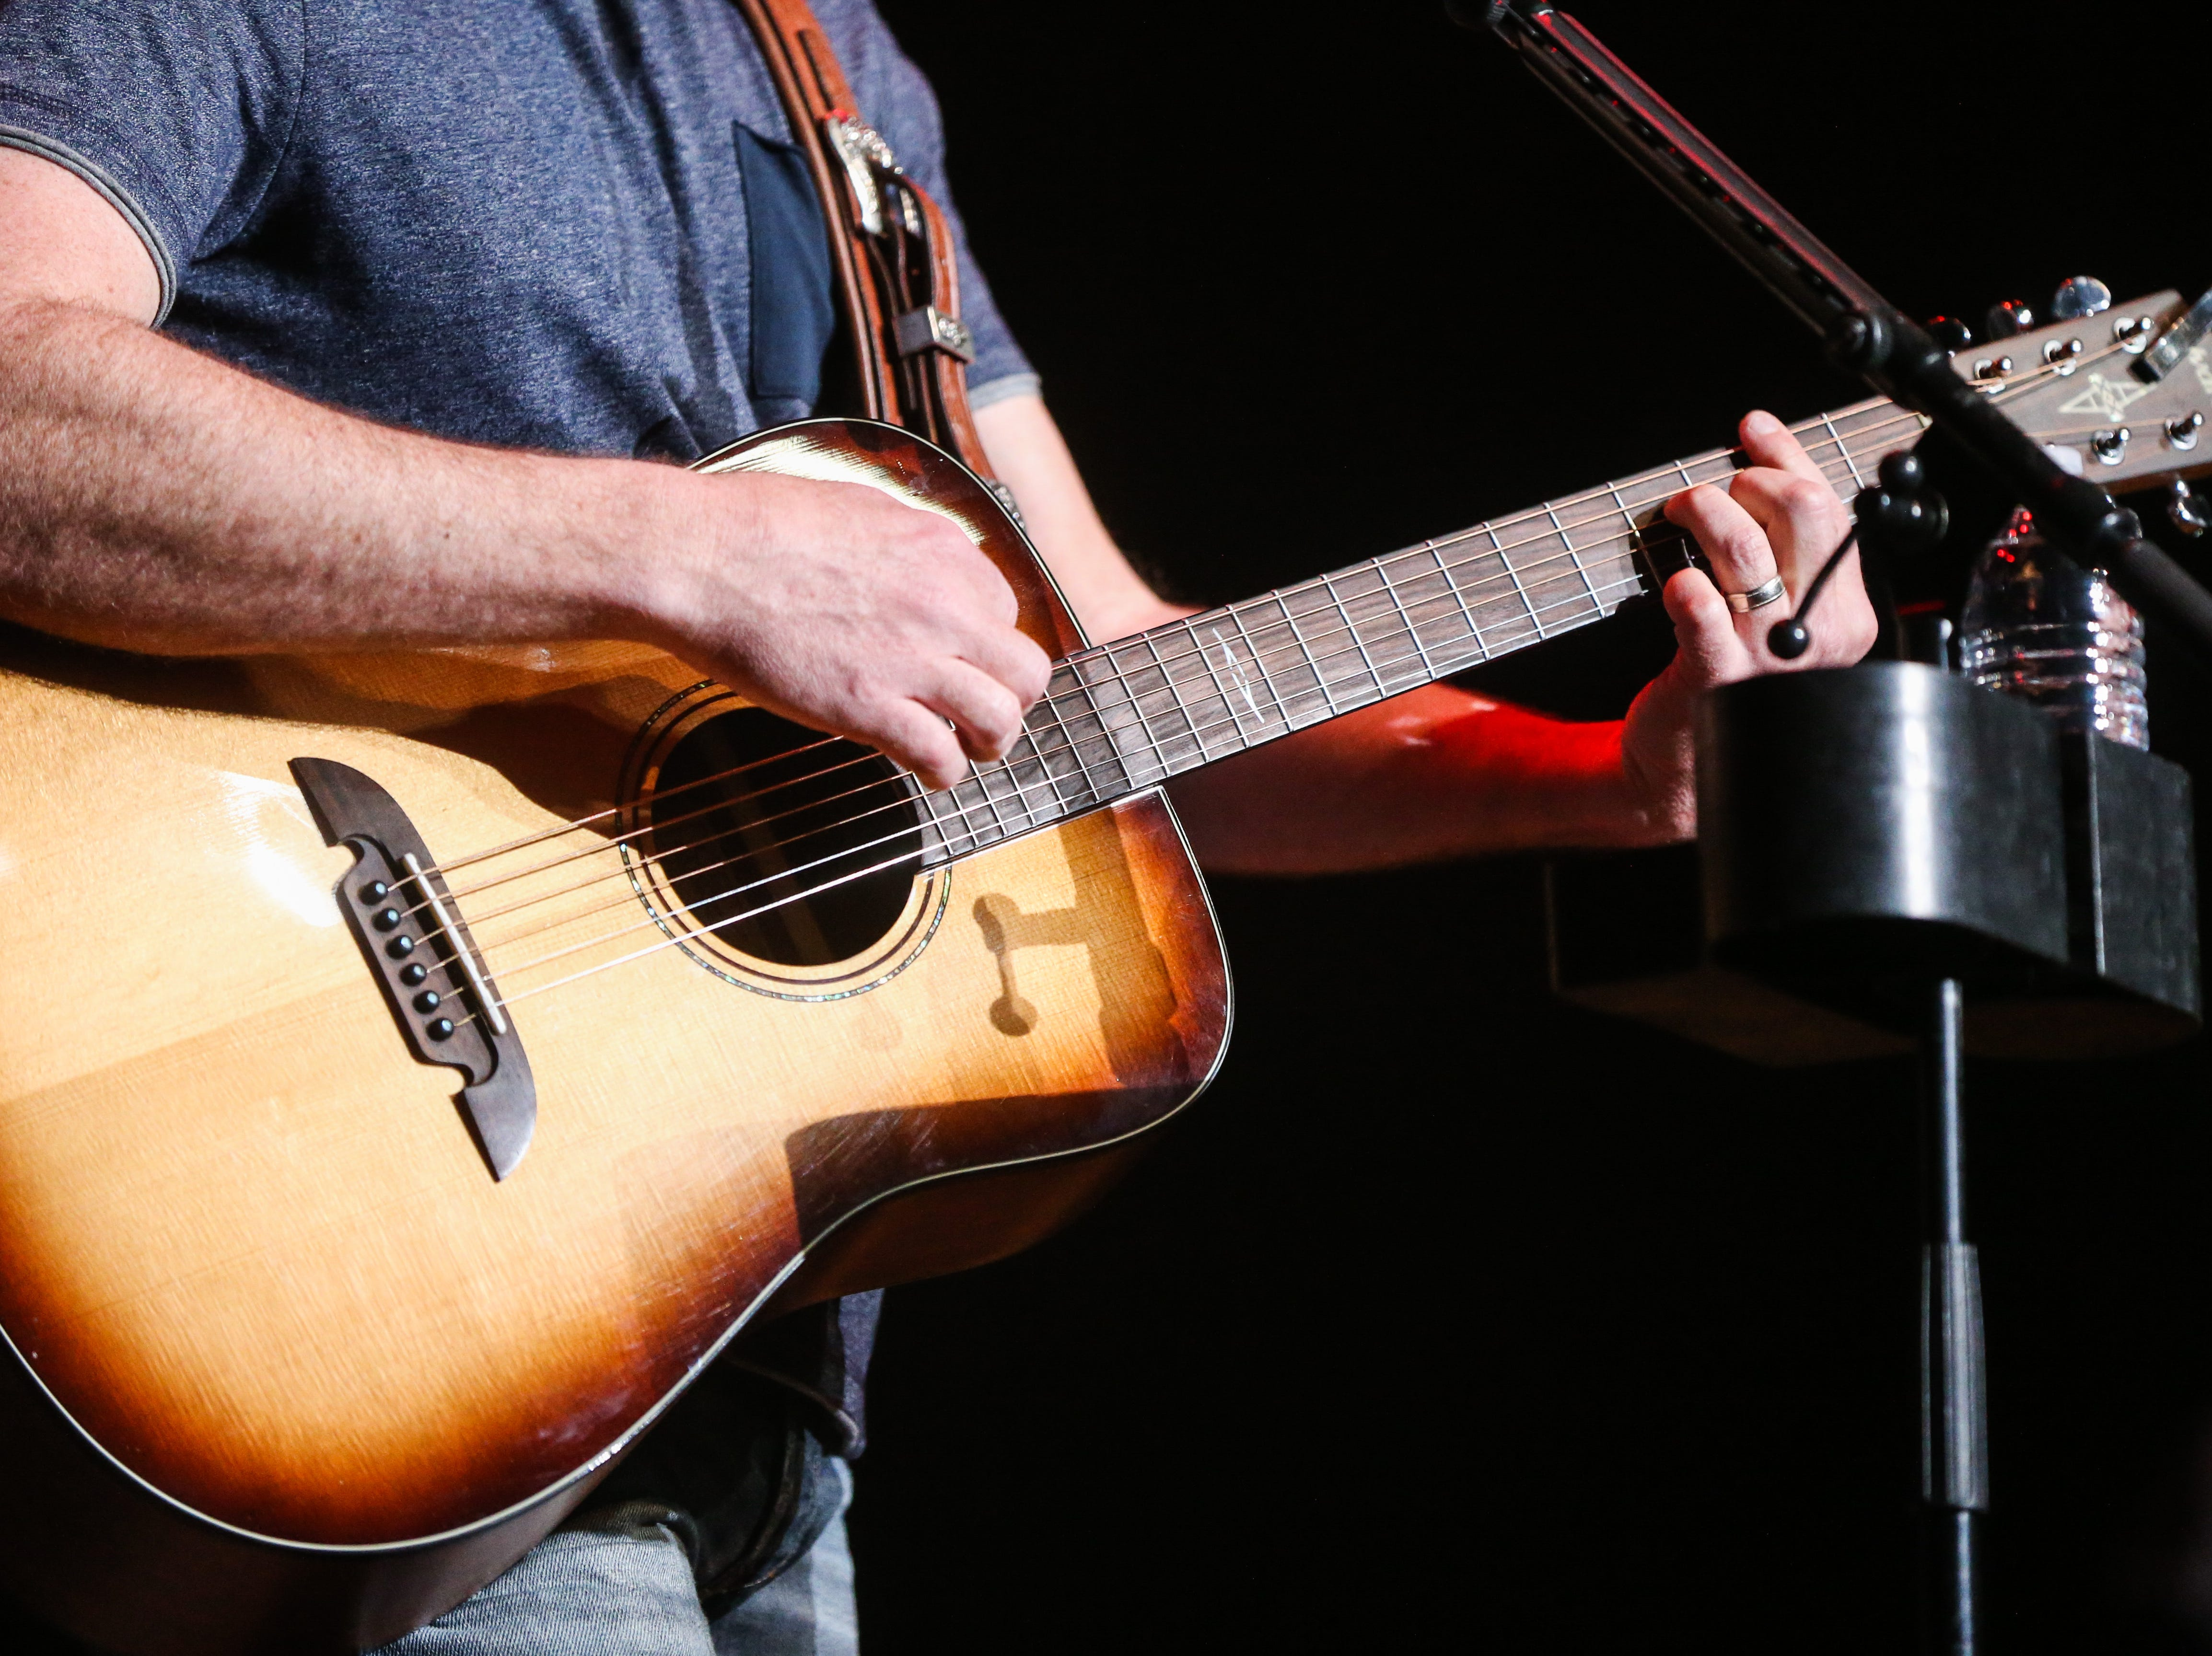 Josh Turner plays during the concert Friday, April 5, 2019, at Murphey Performance Hall.